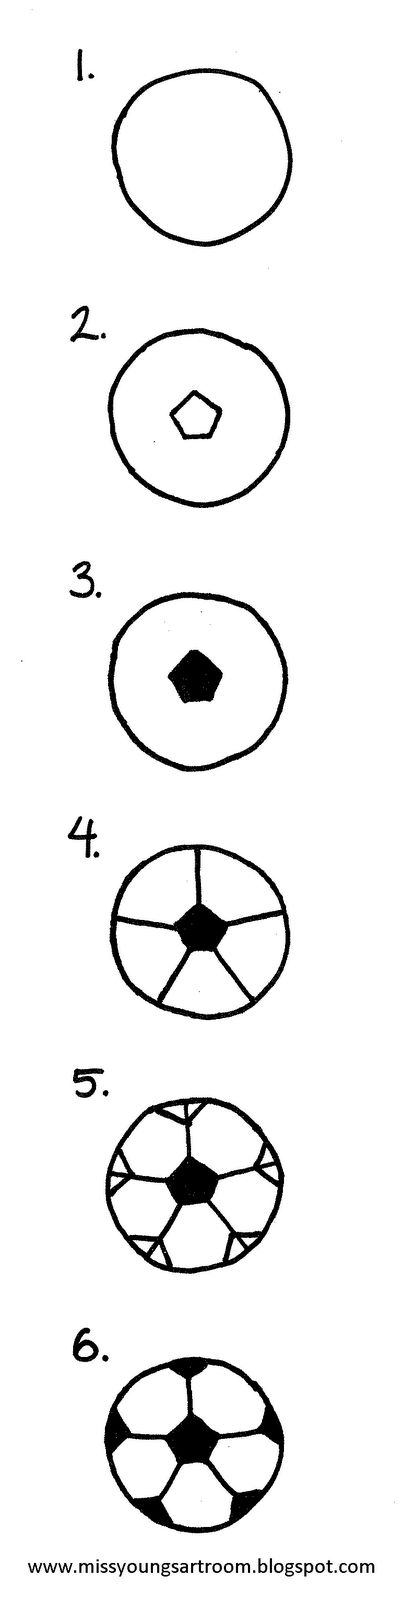 Miss Young's Art Room: How To Draw A Soccer Ball